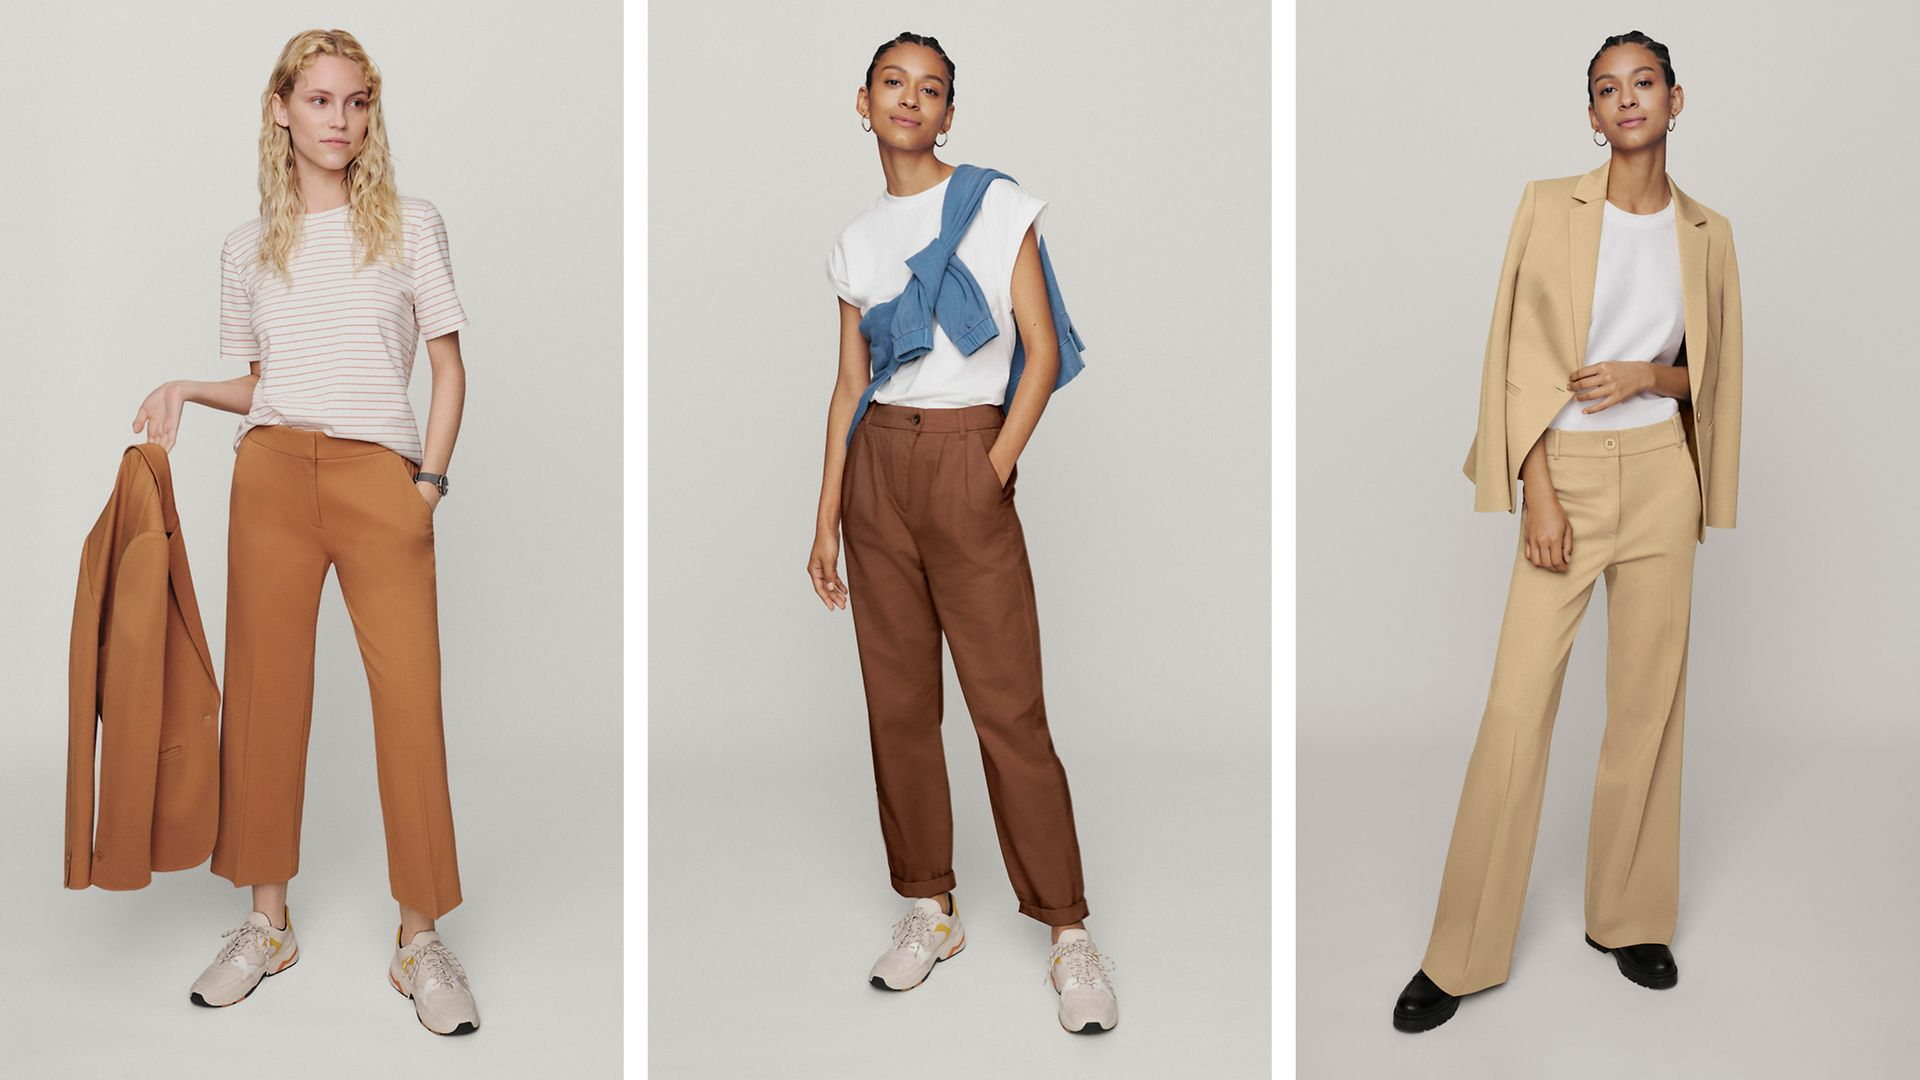 072021 - Women - Inspiration - Lookbook - Simply perfect trousers - Hero Large 1 IMG